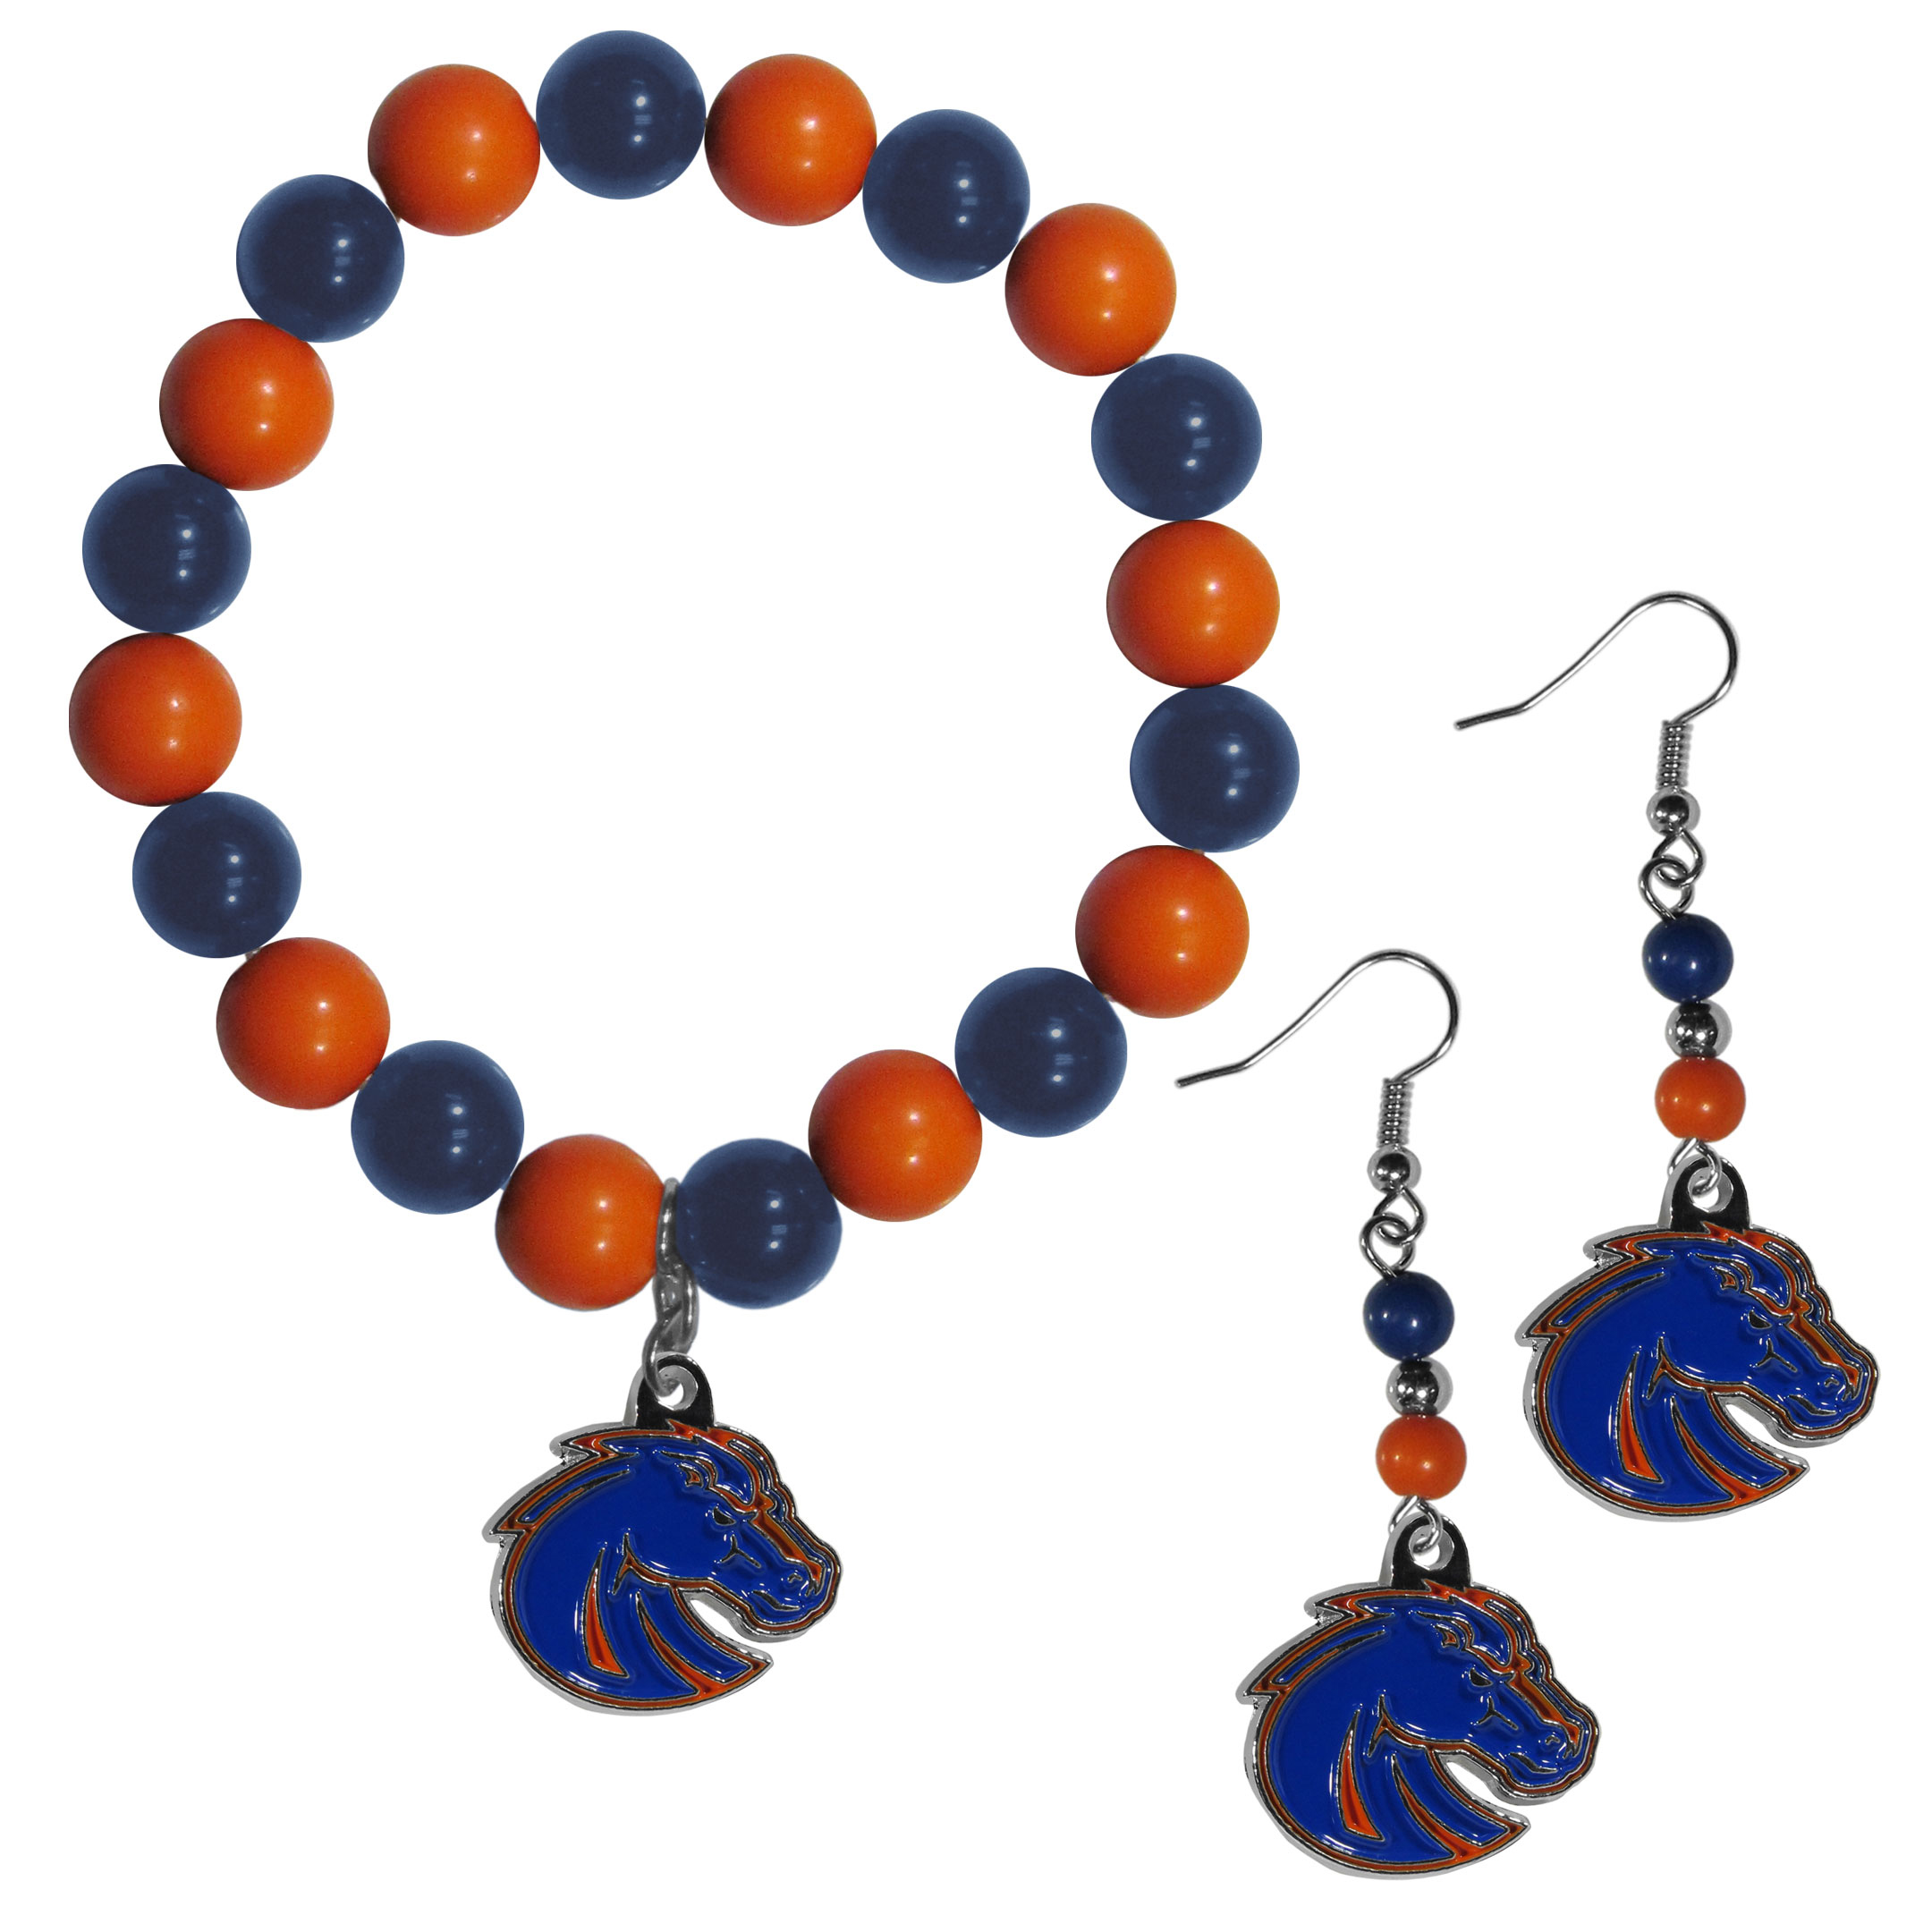 Boise St. Broncos Fan Bead Earrings and Bracelet Set - This fun and colorful Boise St. Broncos fan bead jewelry set is fun and casual with eye-catching beads in bright team colors. The fashionable dangle earrings feature a team colored beads that drop down to a carved and enameled charm. The stretch bracelet has larger matching beads that make a striking statement and have a matching team charm. These sassy yet sporty jewelry pieces make a perfect gift for any female fan. Spice up your game-day outfit with these fun colorful earrings and bracelet that are also cute enough for any day.